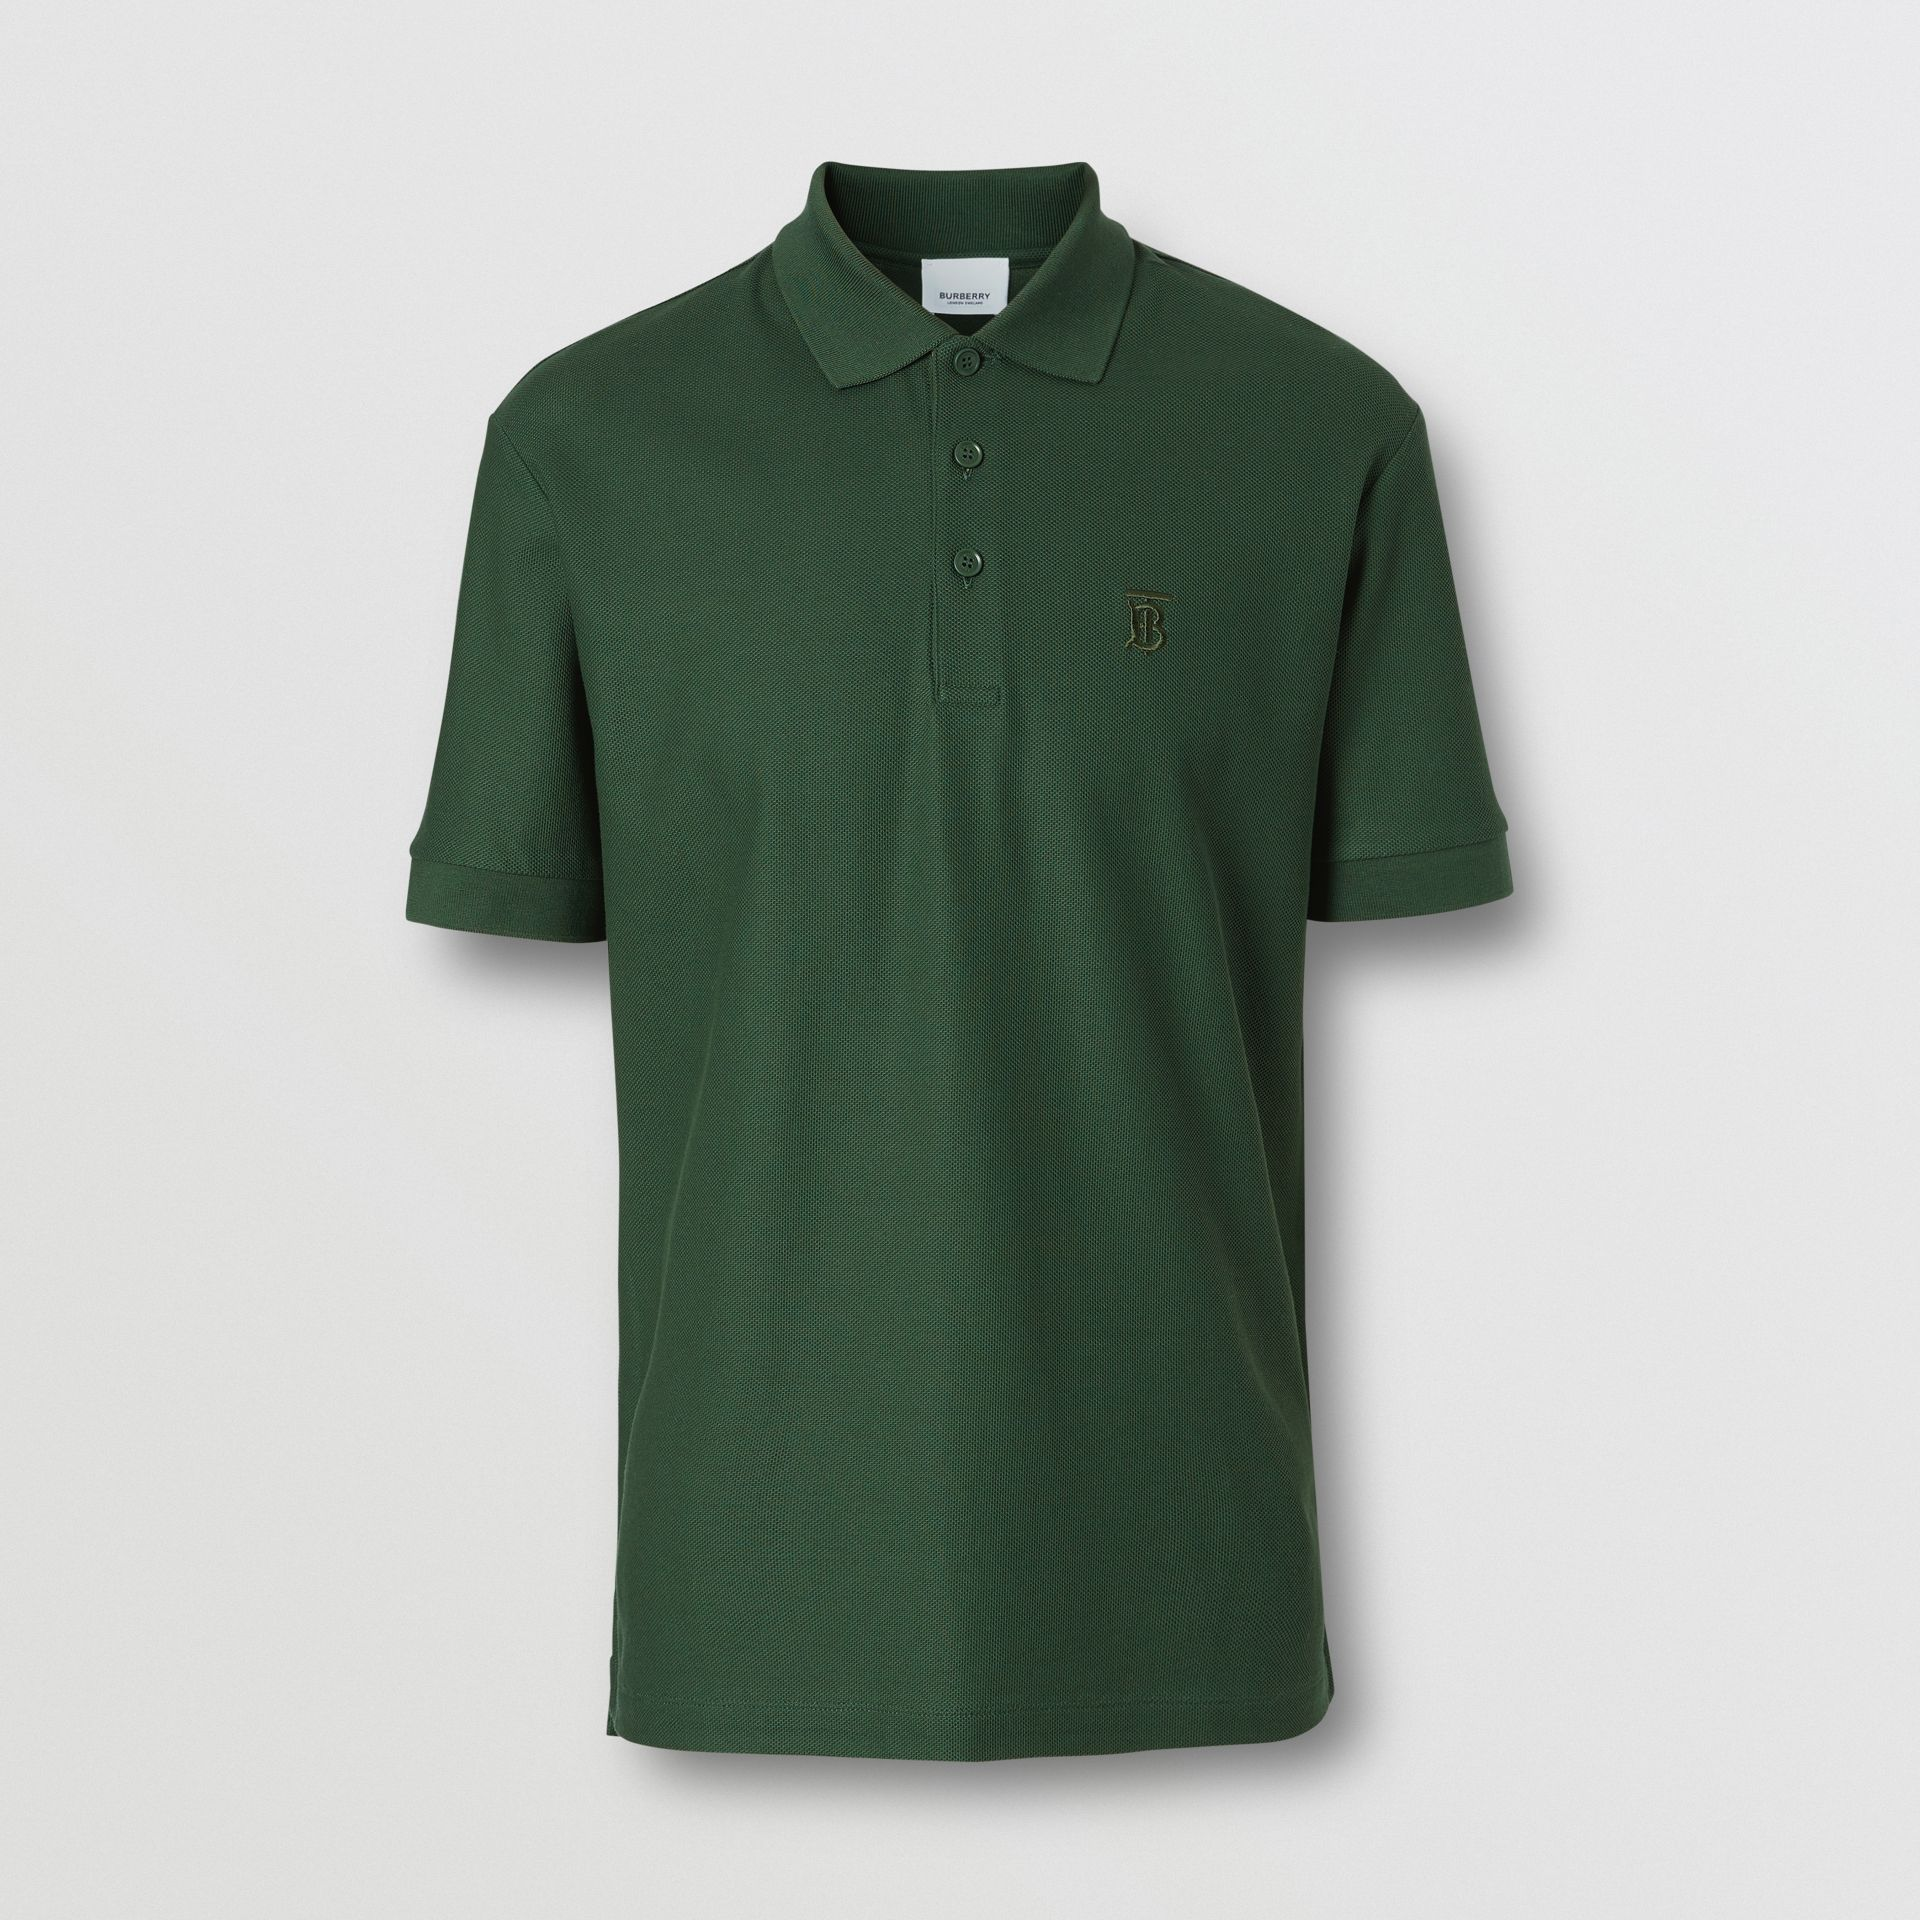 Monogram Motif Cotton Piqué Polo Shirt in Dark Pine Green - Men | Burberry - gallery image 3